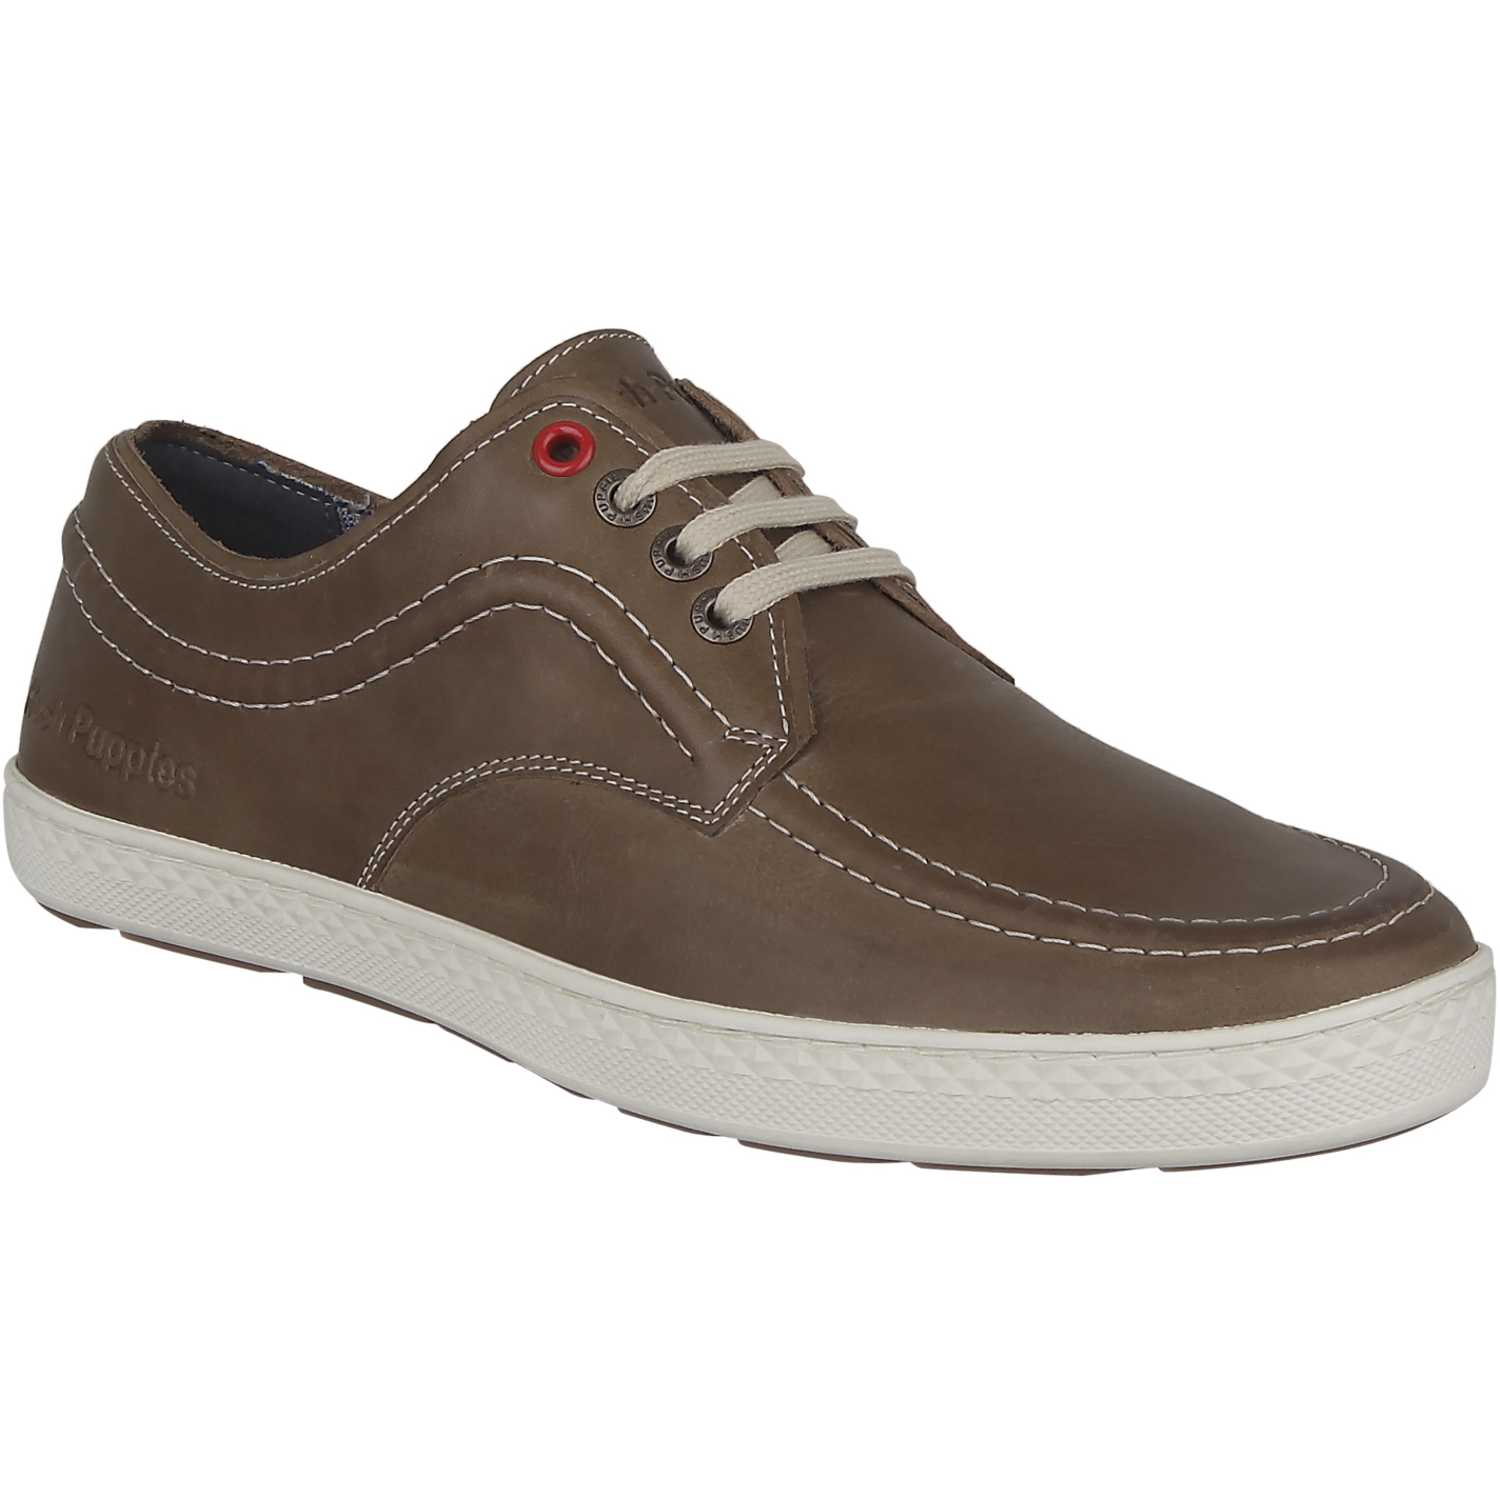 Chalecos de Hombre Hush Puppies Topo teague roadcrew